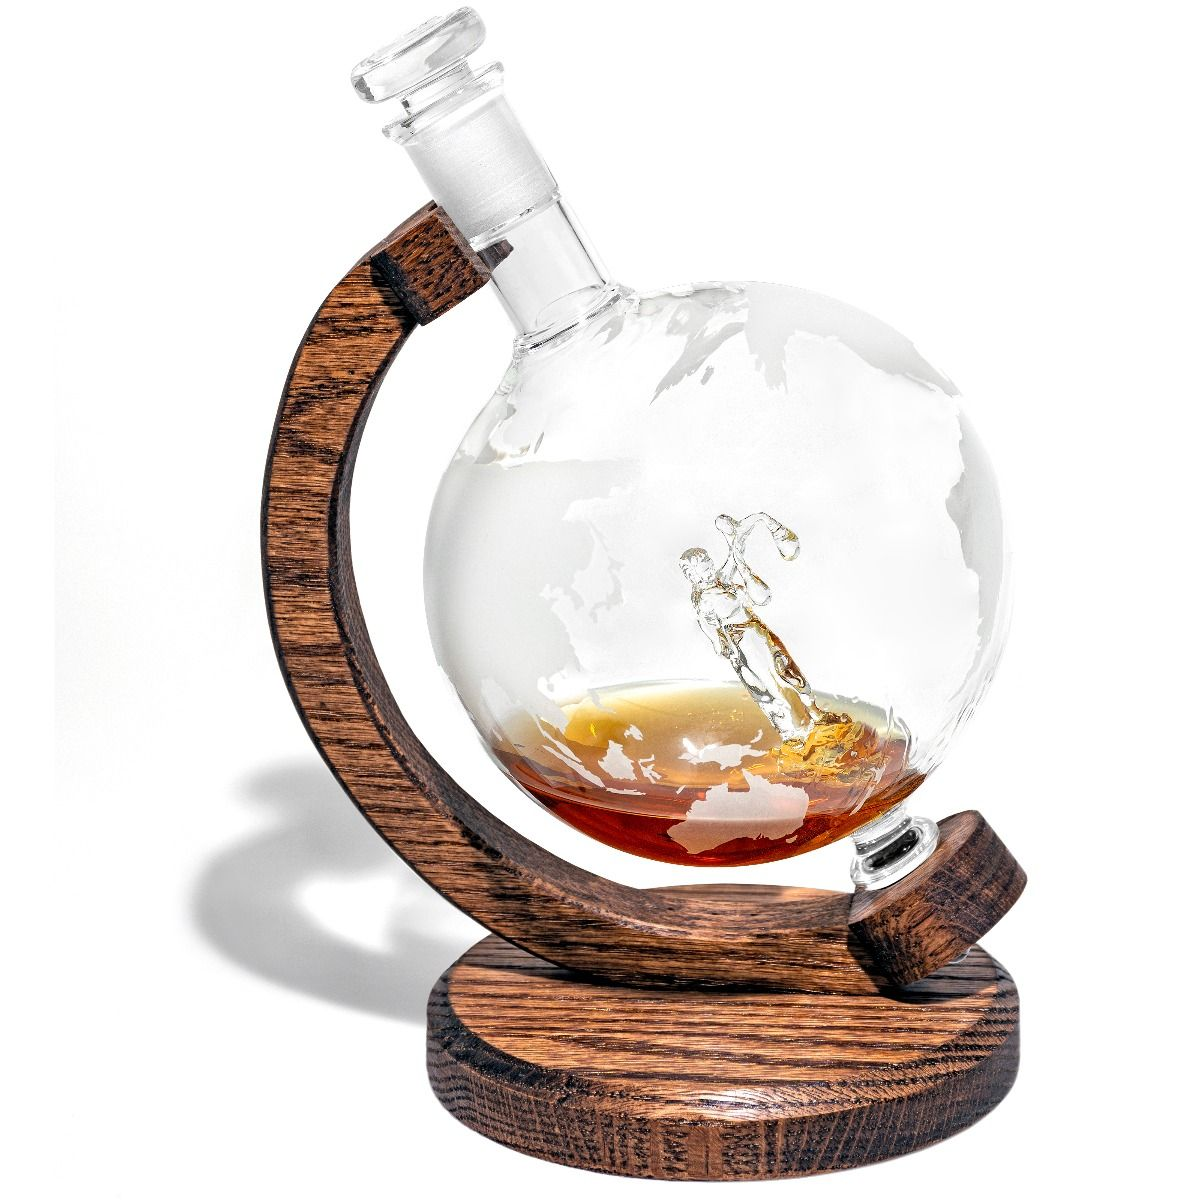 Justia Lady Justice Decanter